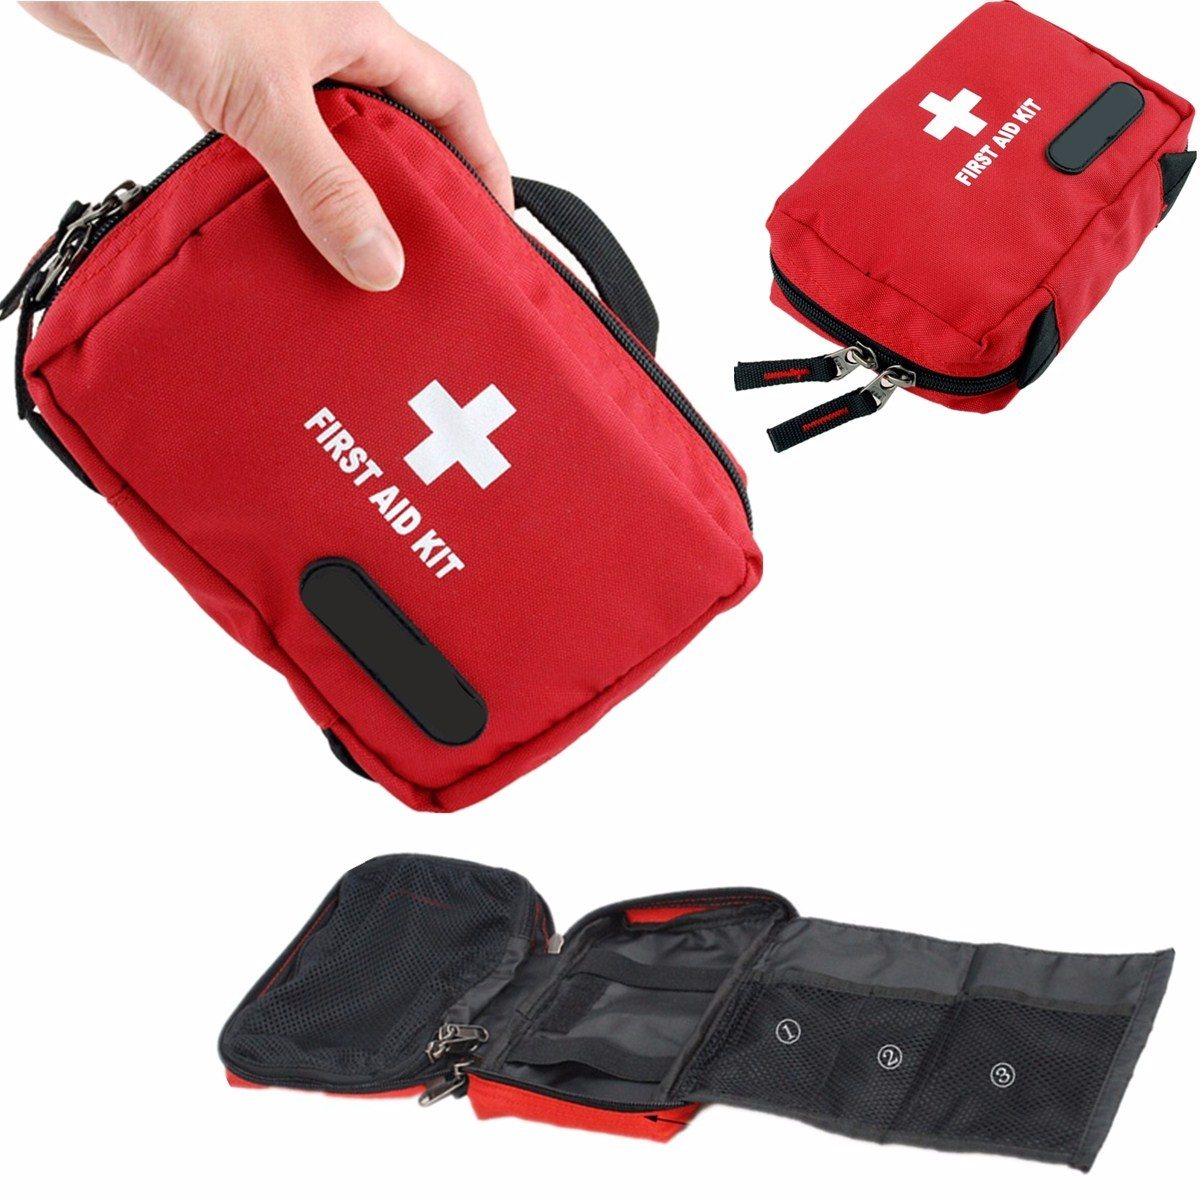 Outdoor Tactical Emergency bag Medical First Aid Pouch Bags Survival Pack Rescue Kit Empty Bag for outdoor Safety Survival